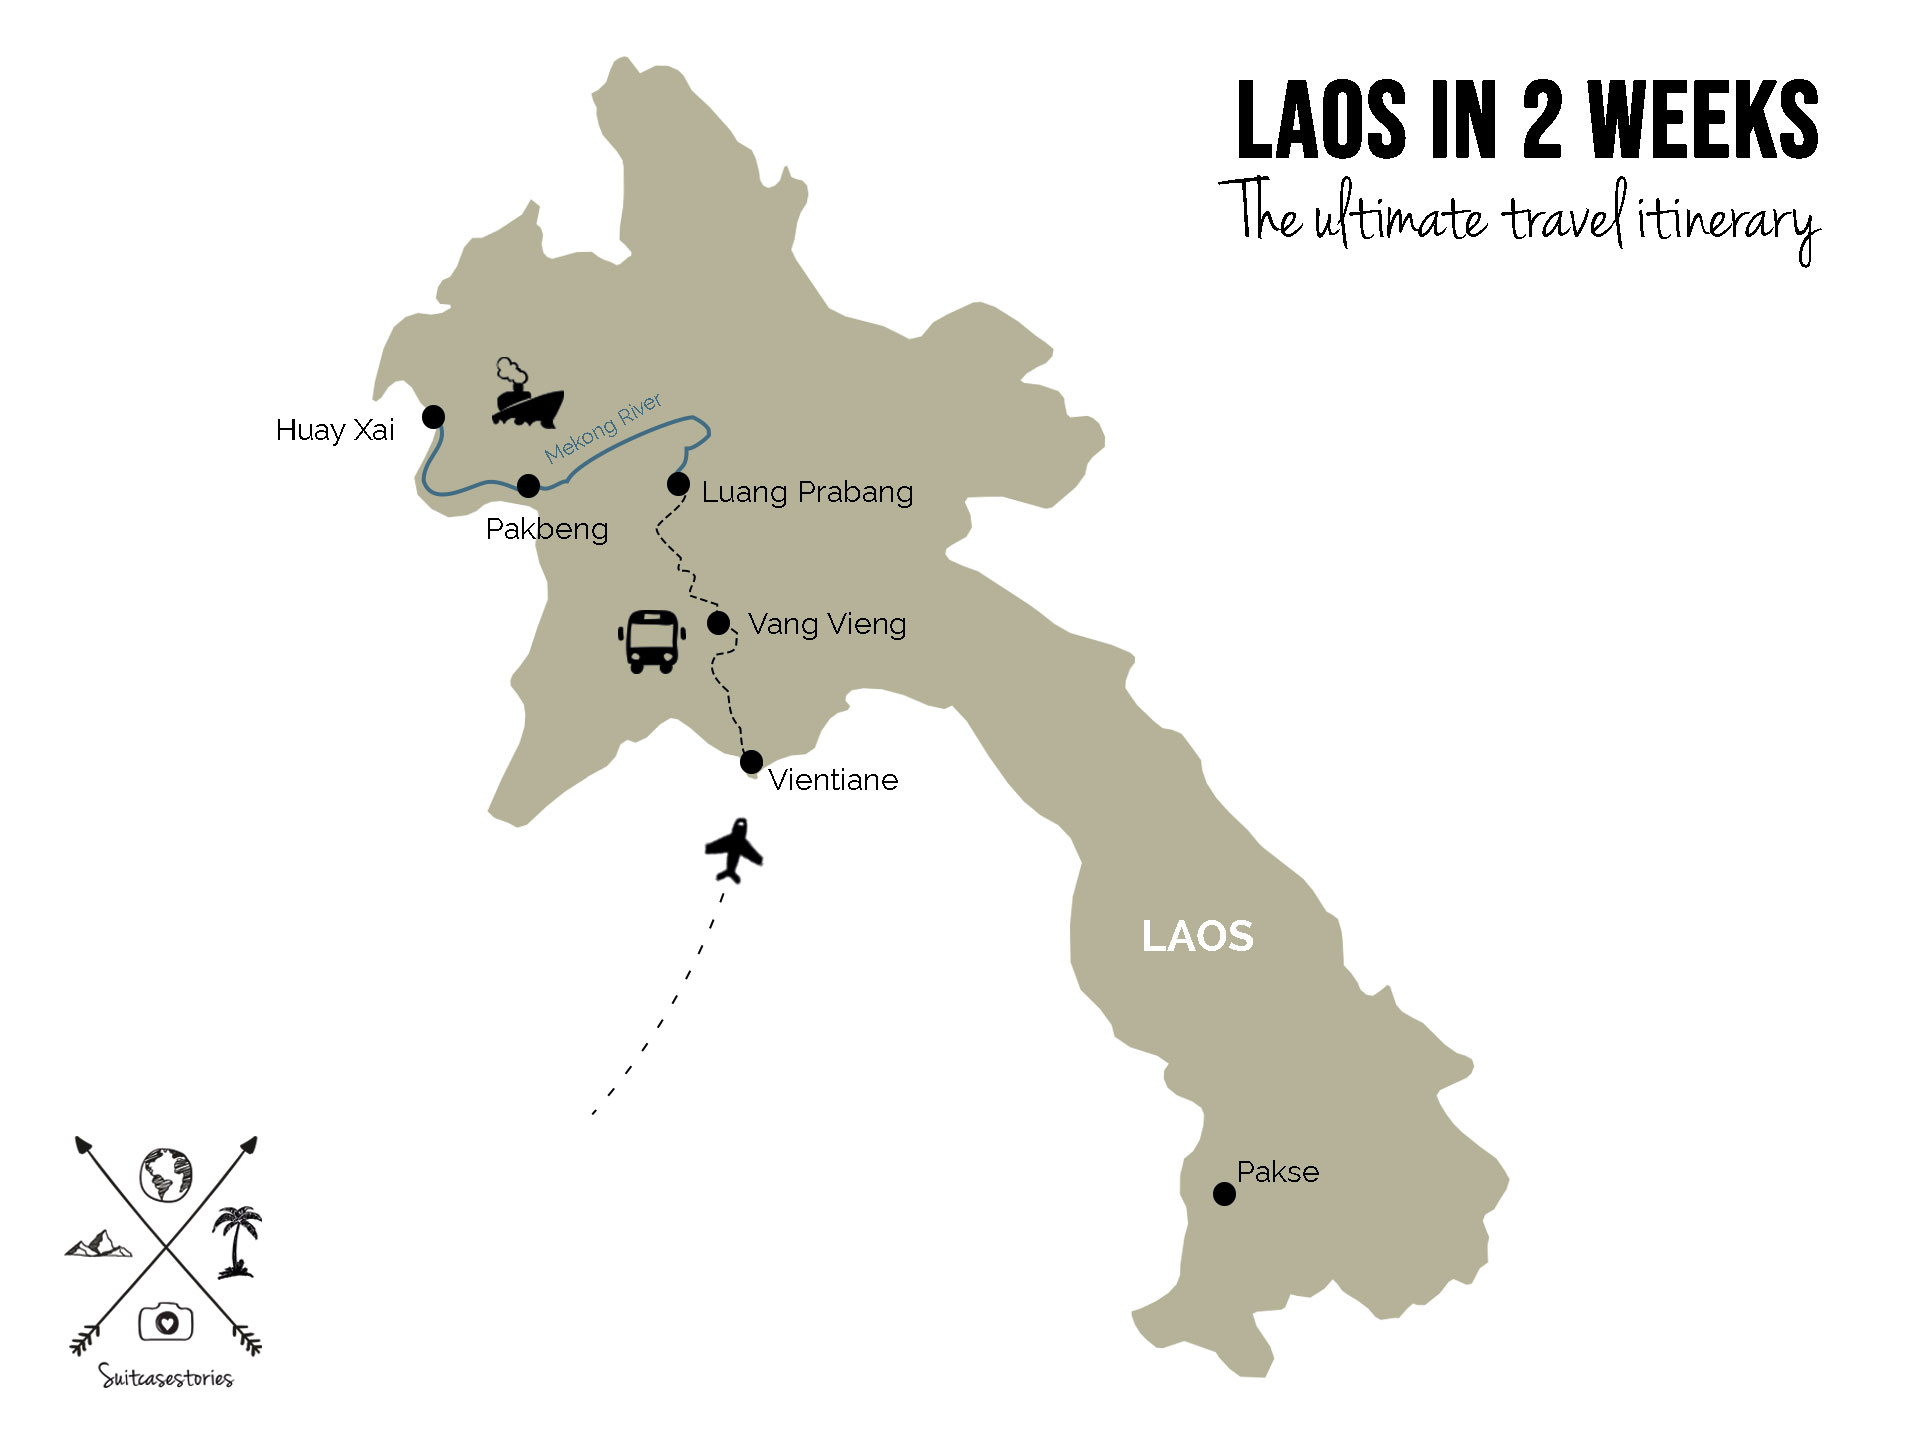 2 weeks in Laos itinerary Map